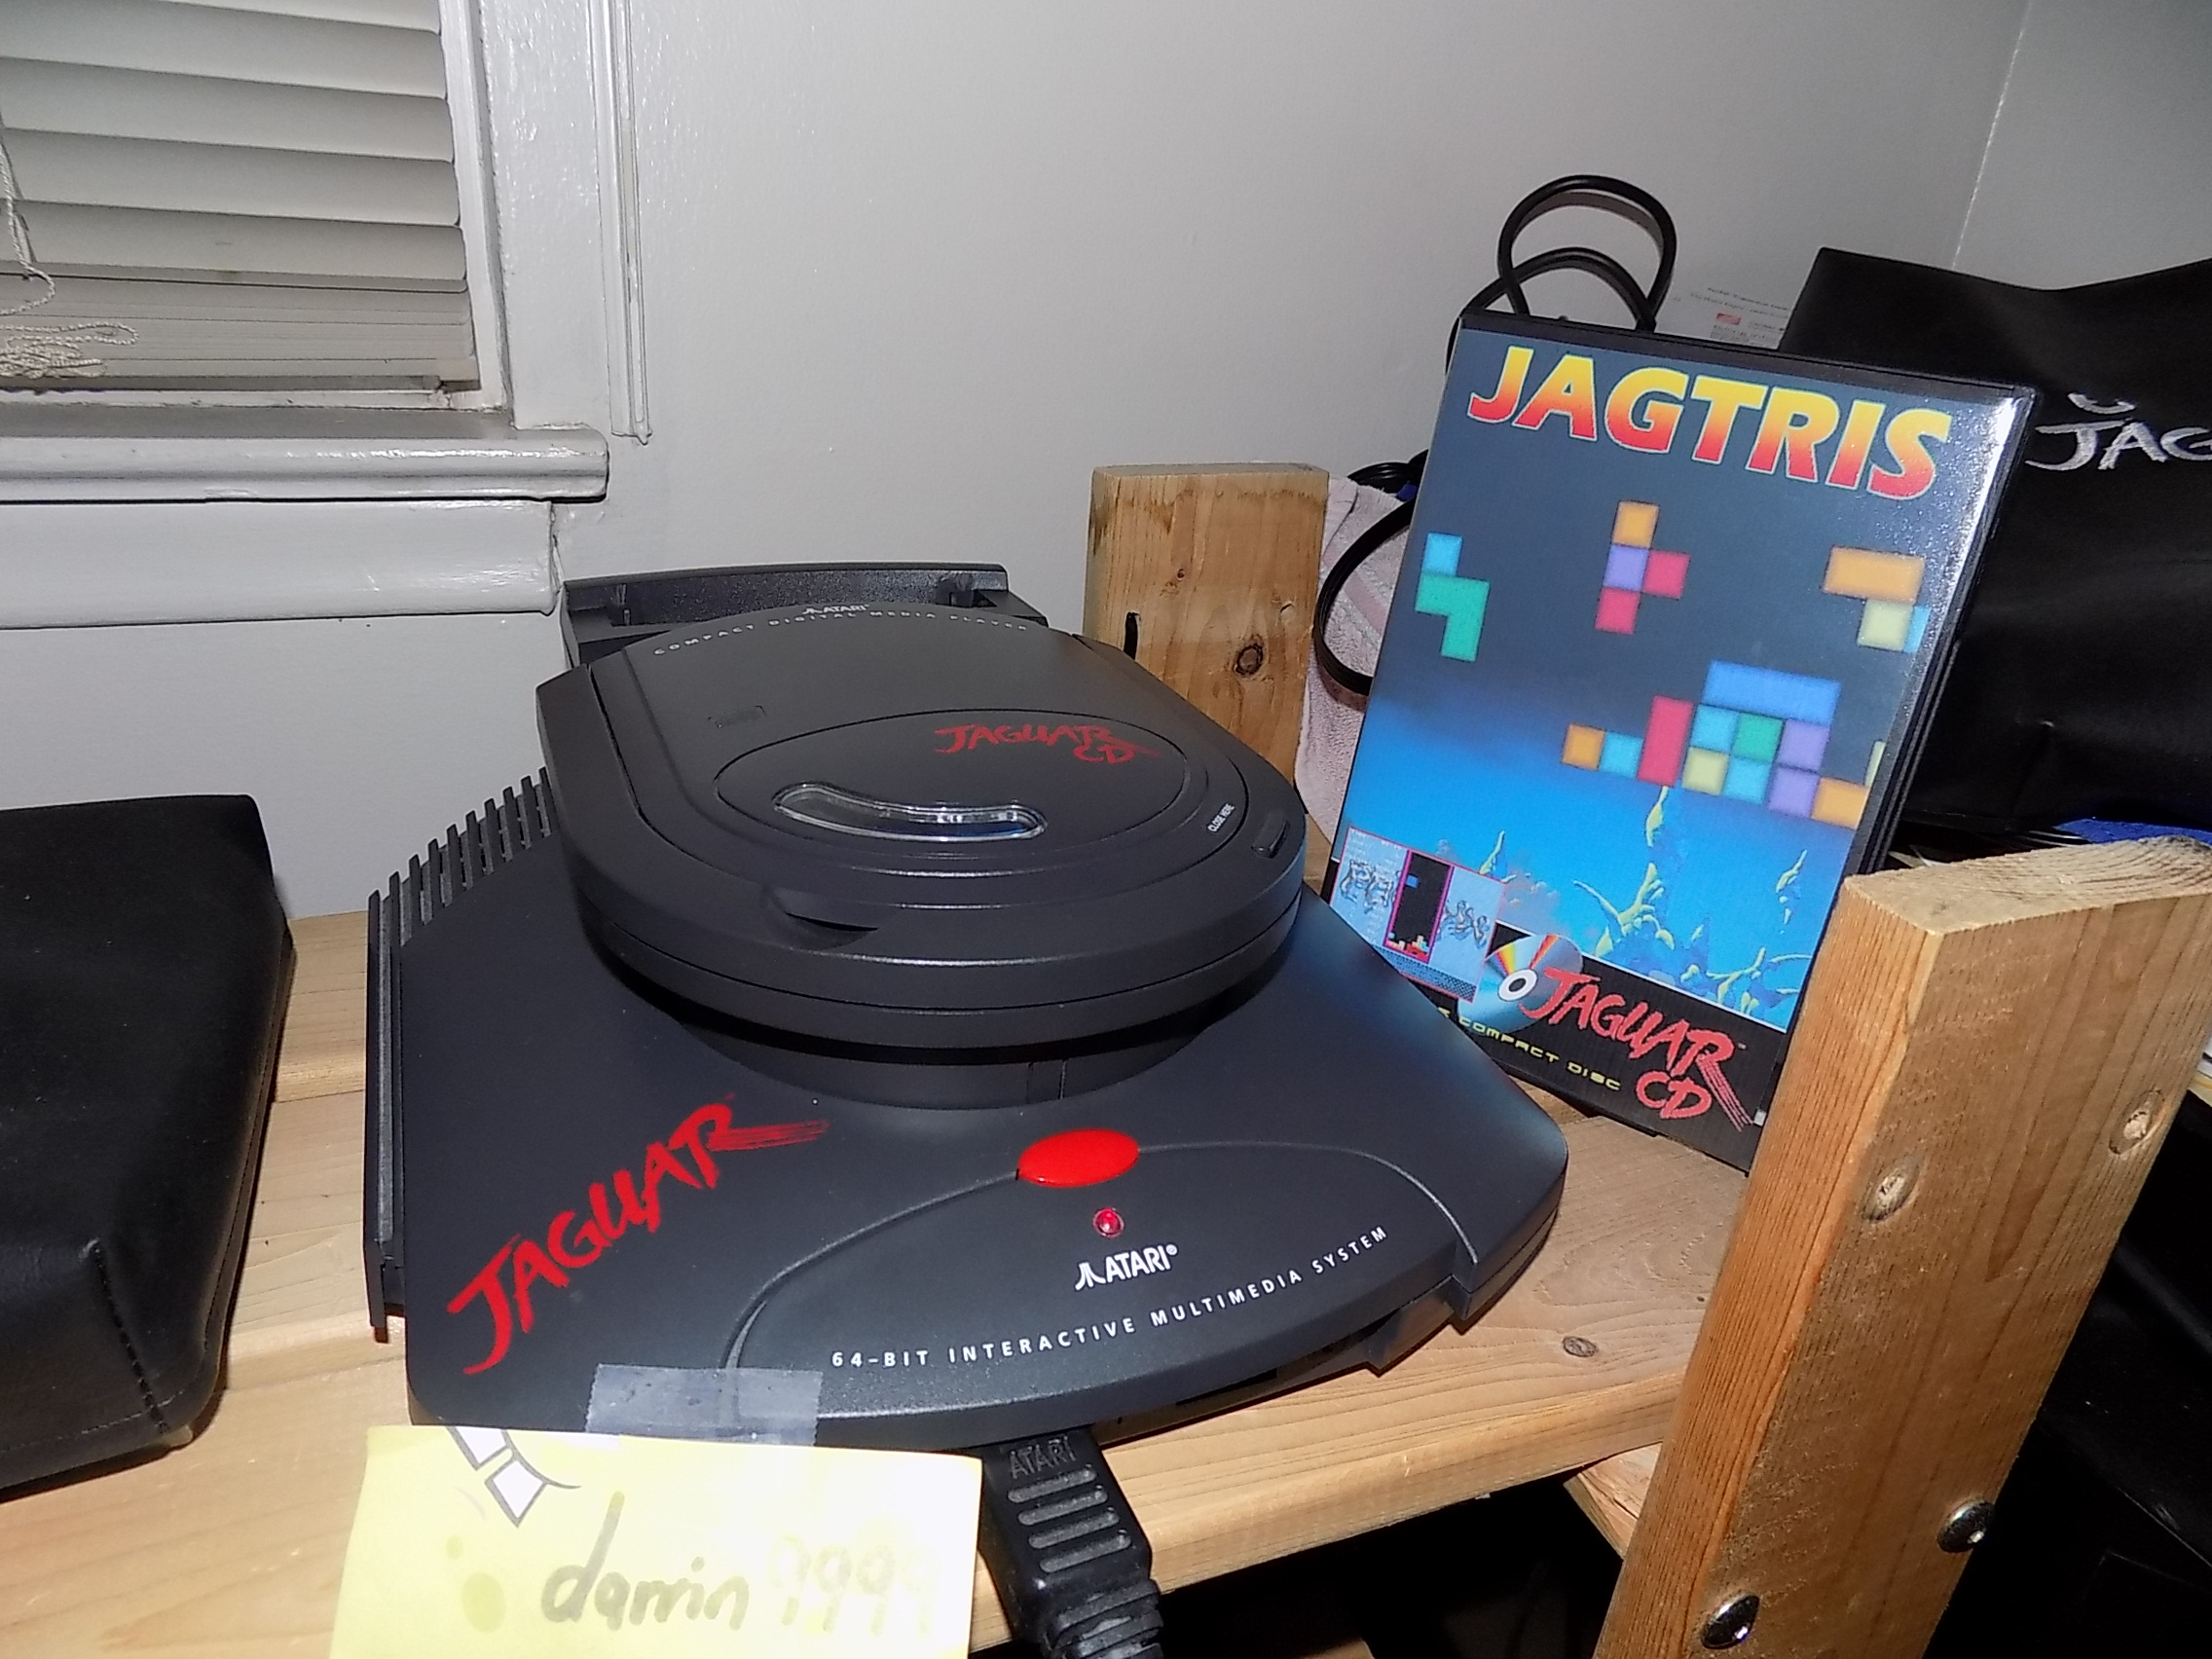 darrin9999: Jagtris (Atari Jaguar) 3,132 points on 2017-12-21 20:52:01